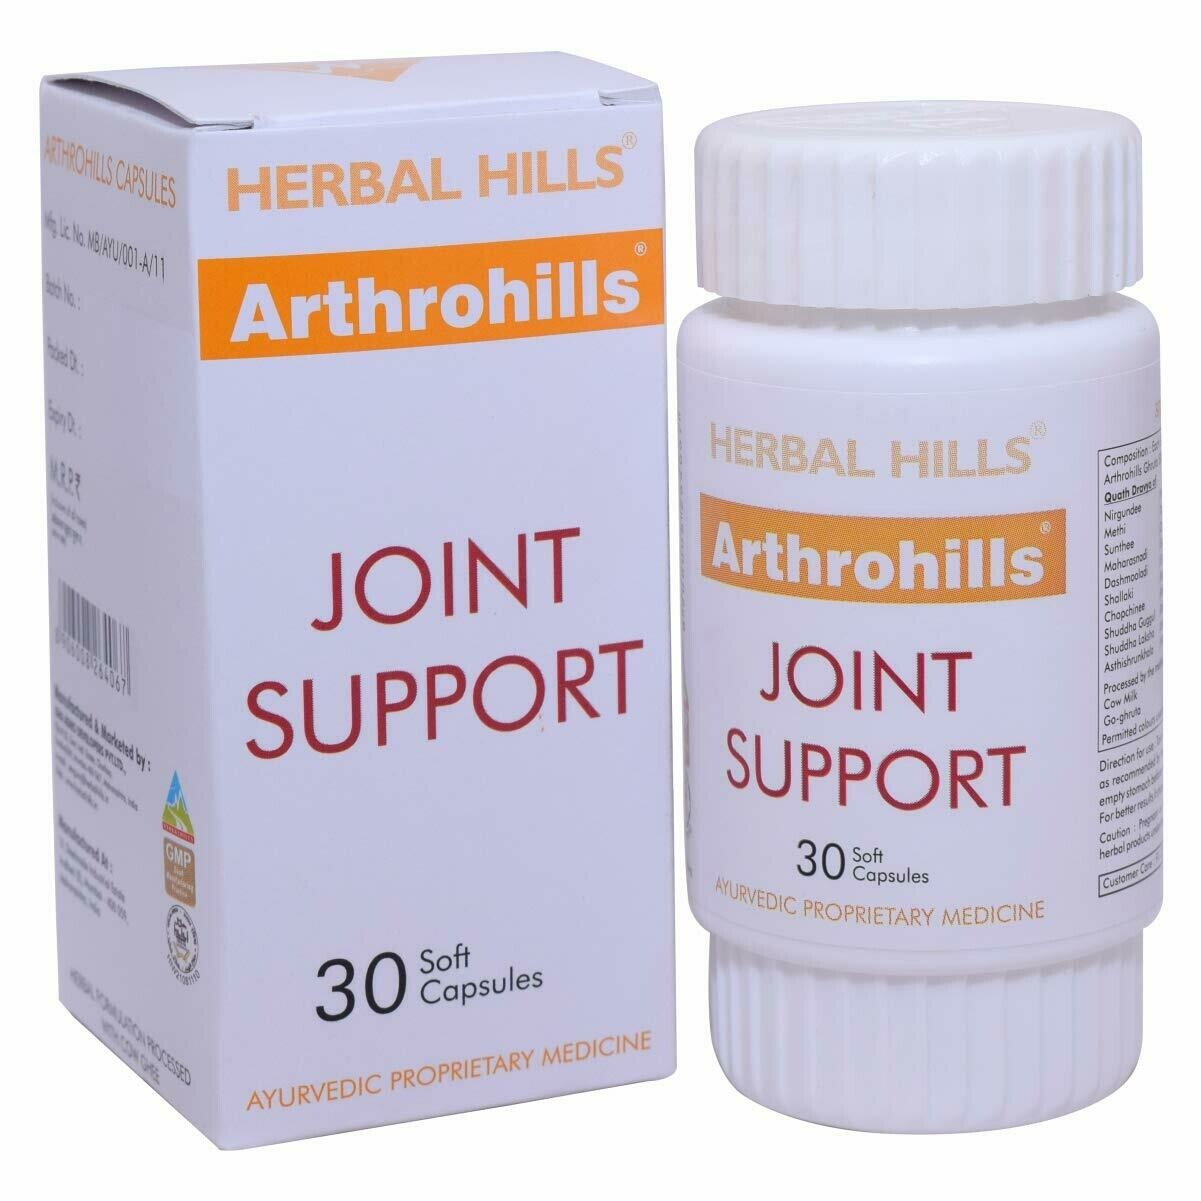 Herbal Hills Arthrohills for Joint Care  30Capsules